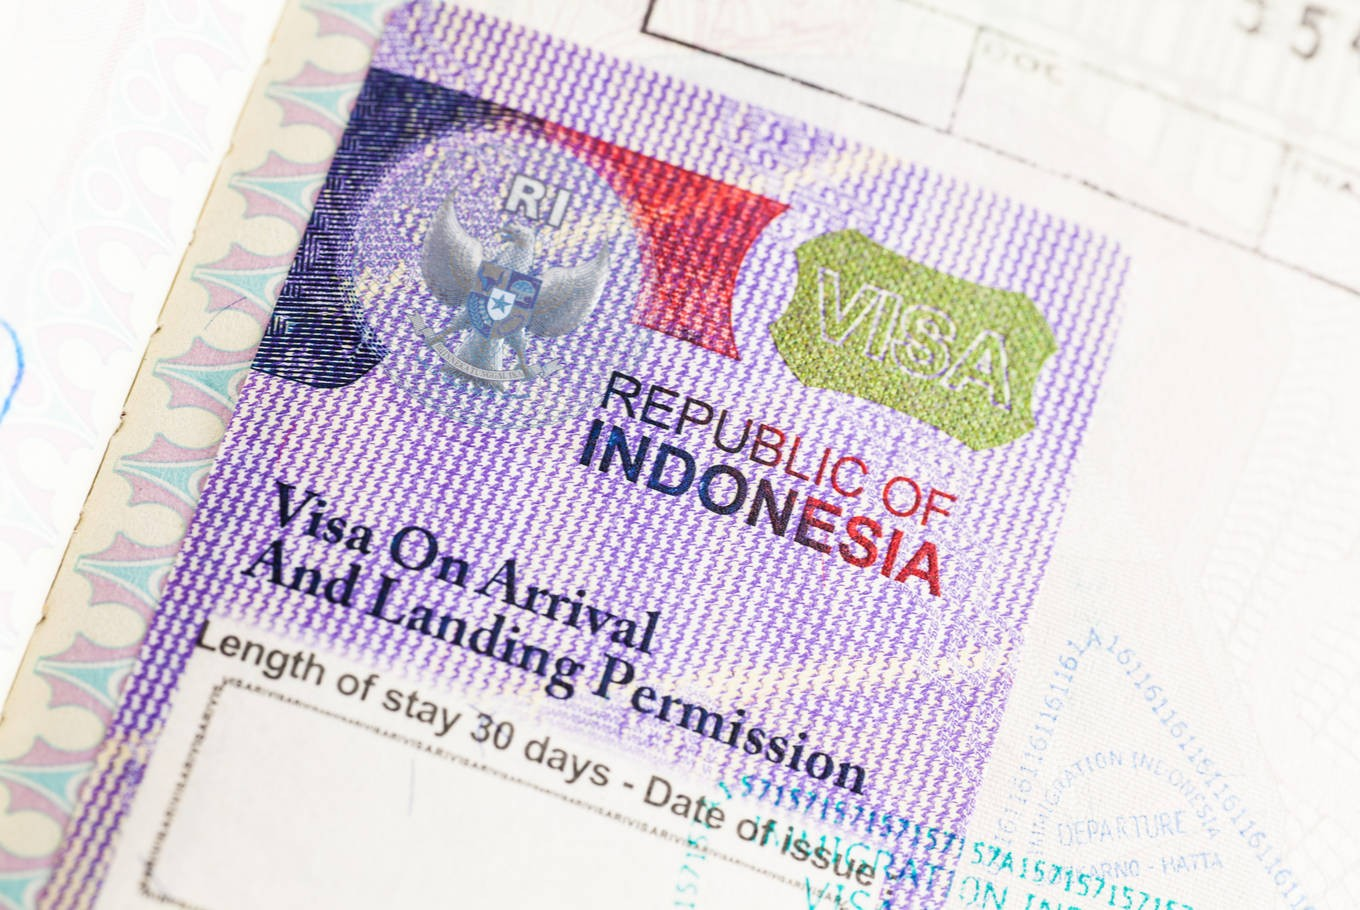 Indonesia to resume calling visa process for Israel, seven other countries